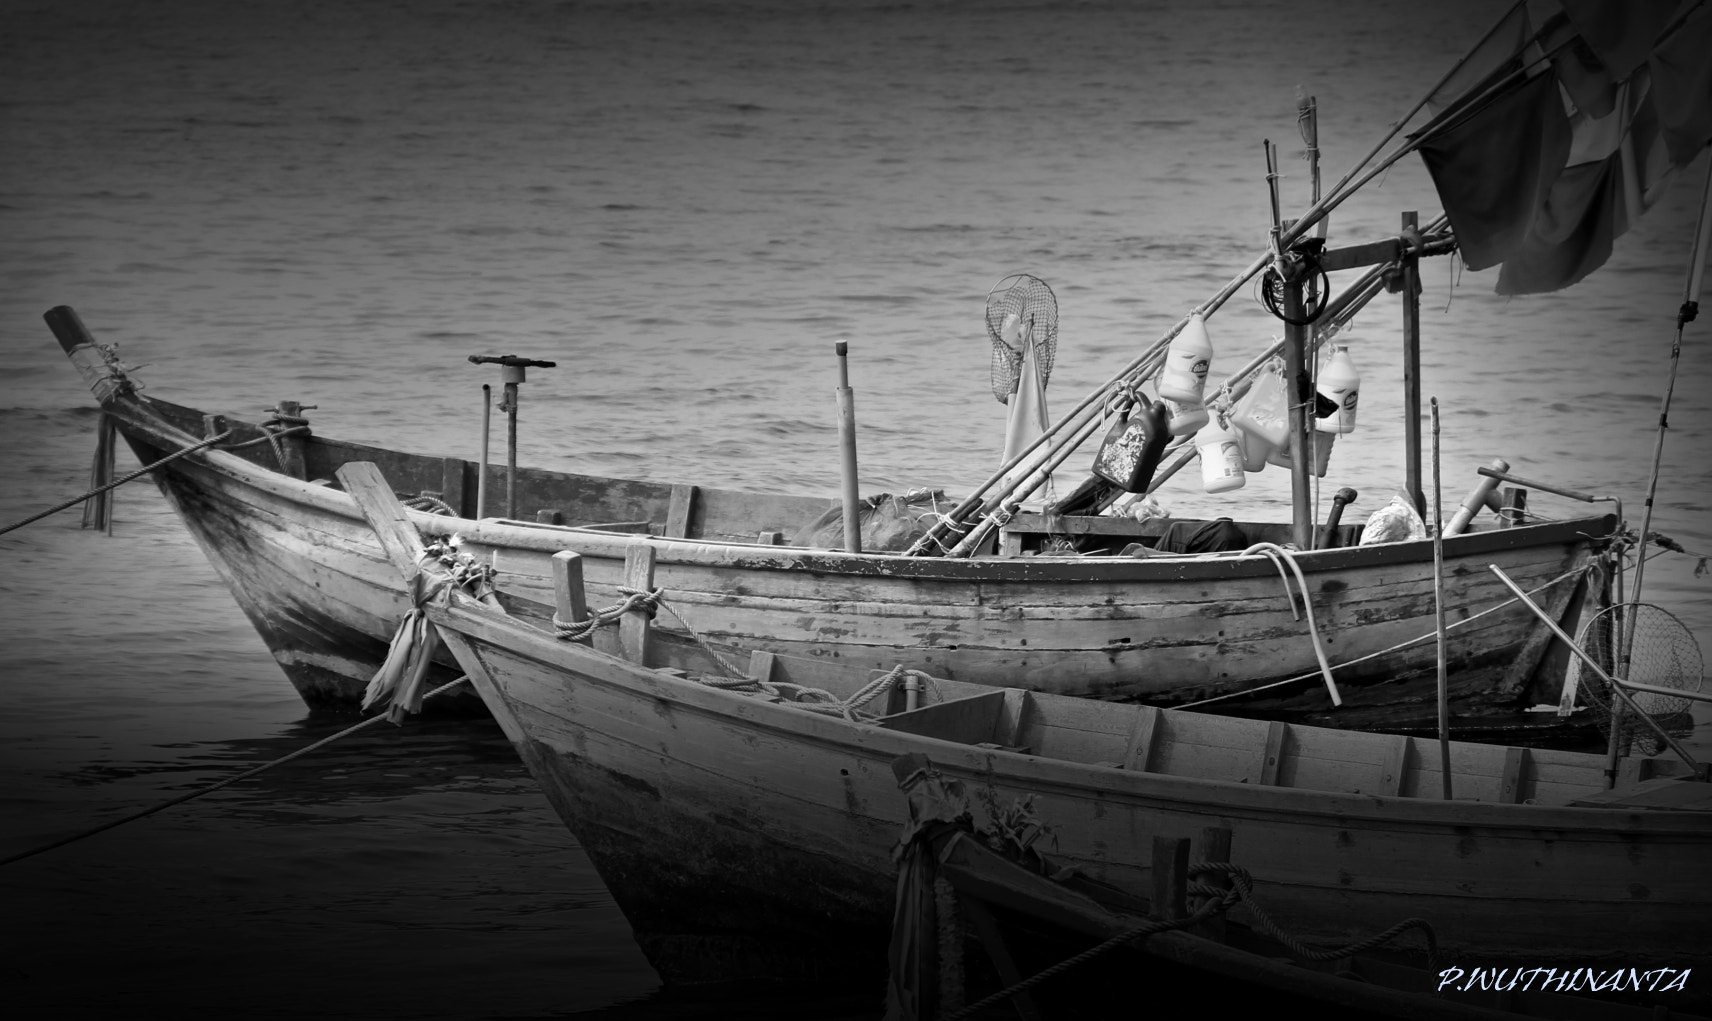 Photograph Local fishing boats. by Puthipong Wuthinanta on 500px